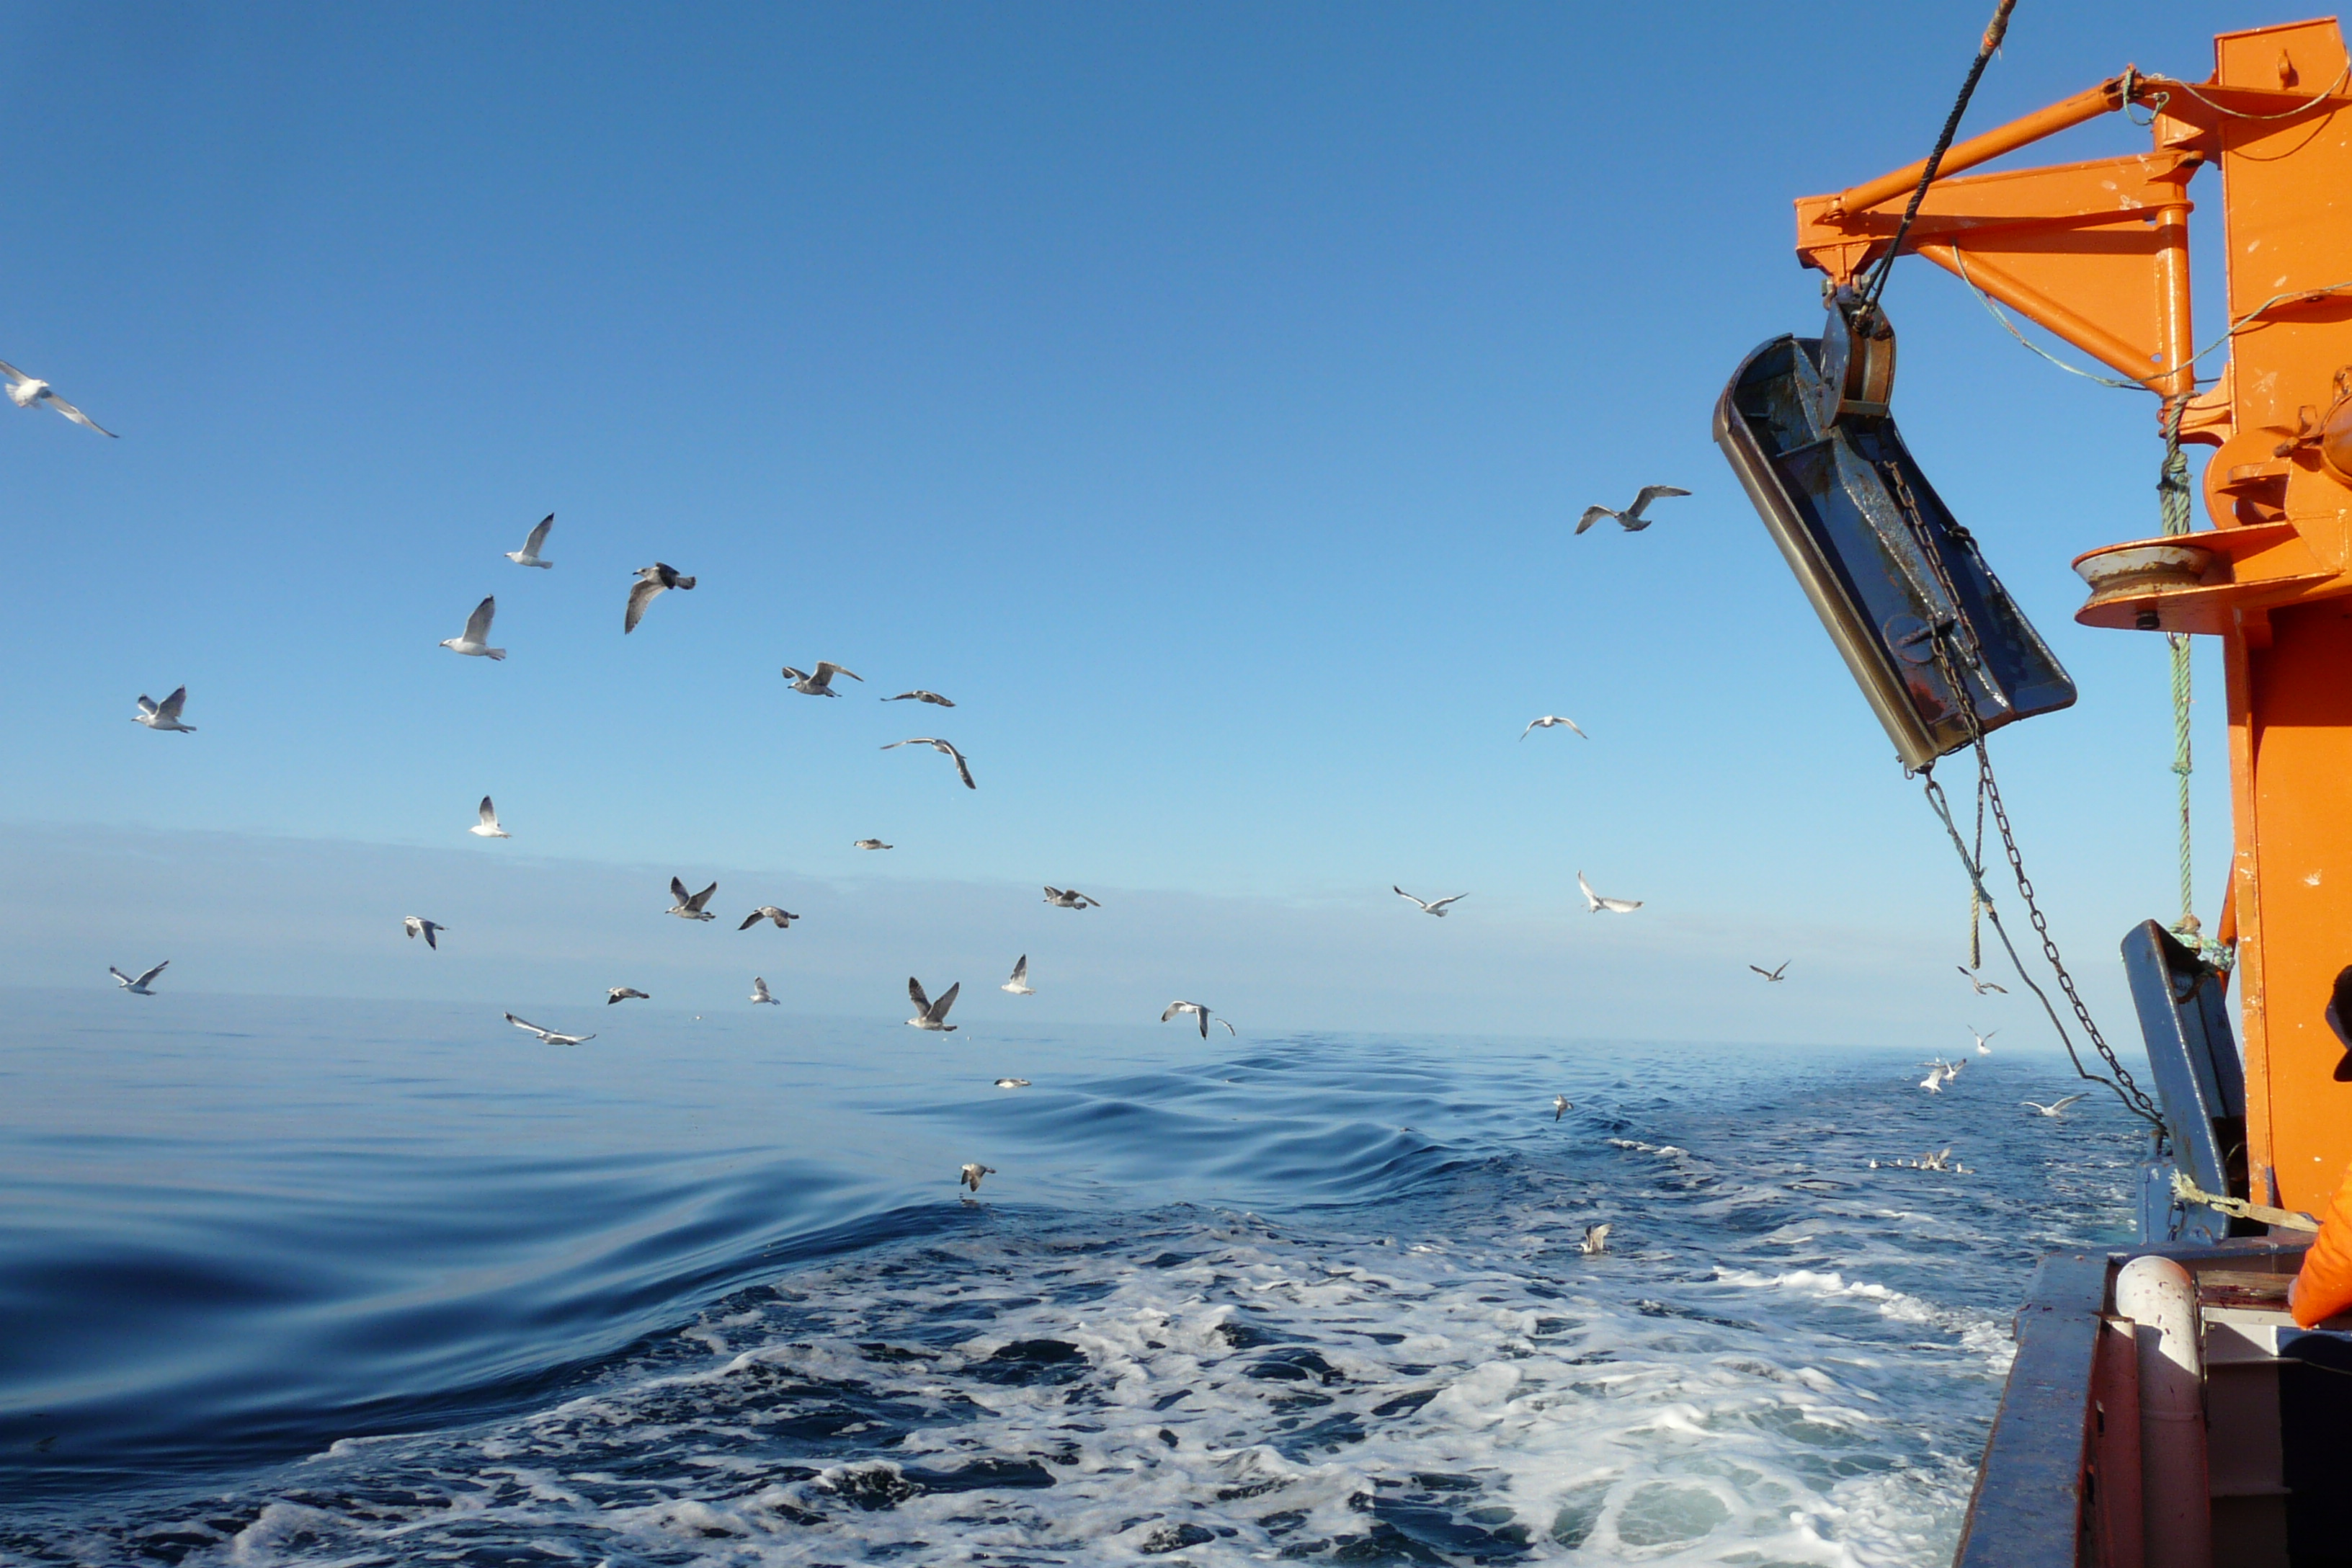 Wwf welcomes improved msc fisheries standard wwf related links xflitez Choice Image